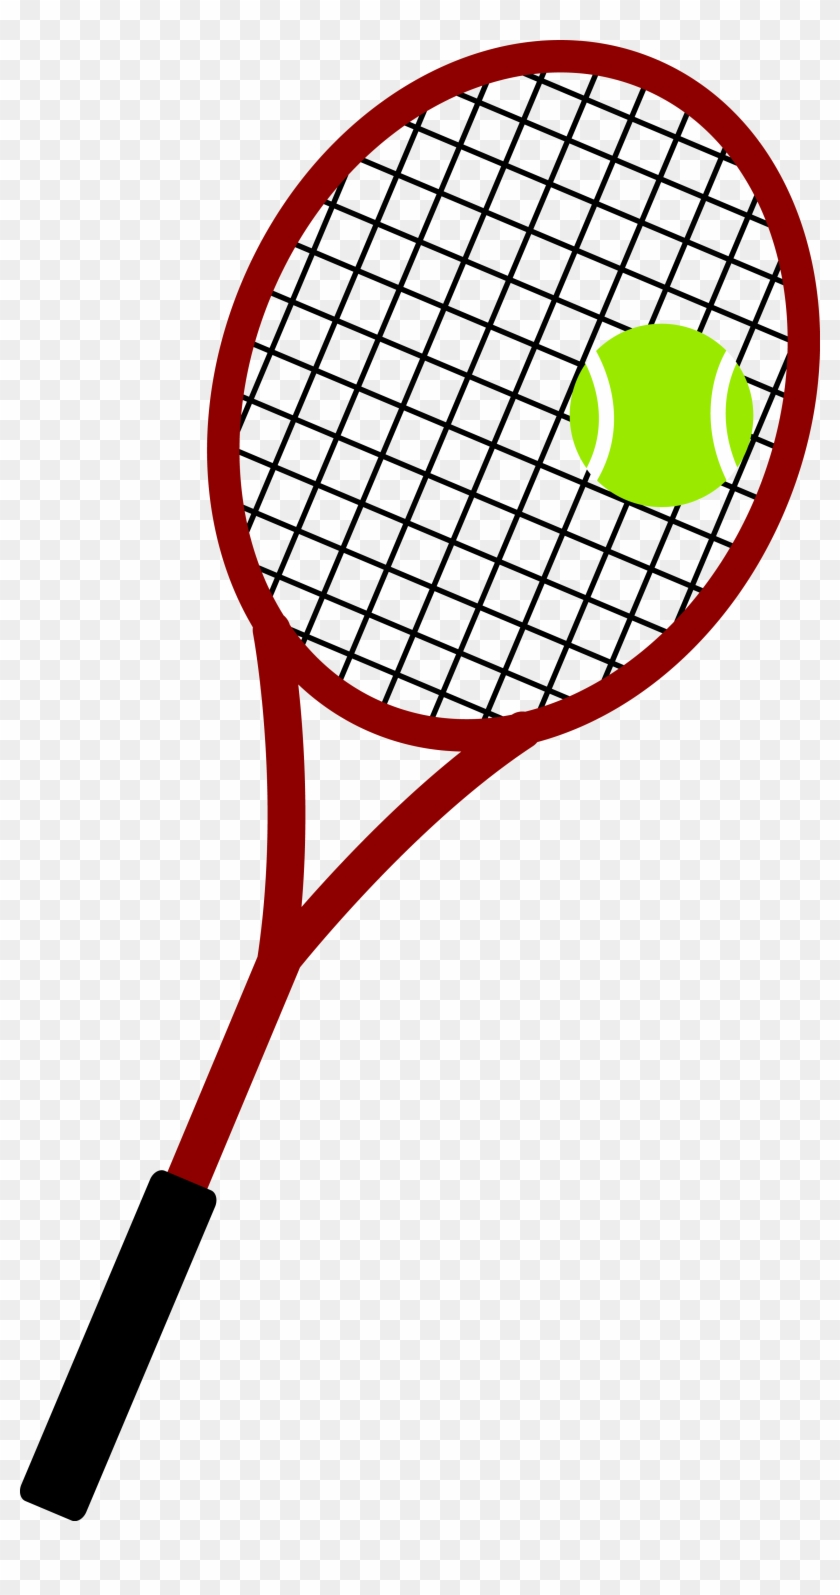 Rachet clipart png library download Tennis Ball And Racket Png Image - Tennis Racket Clip Art ... png library download